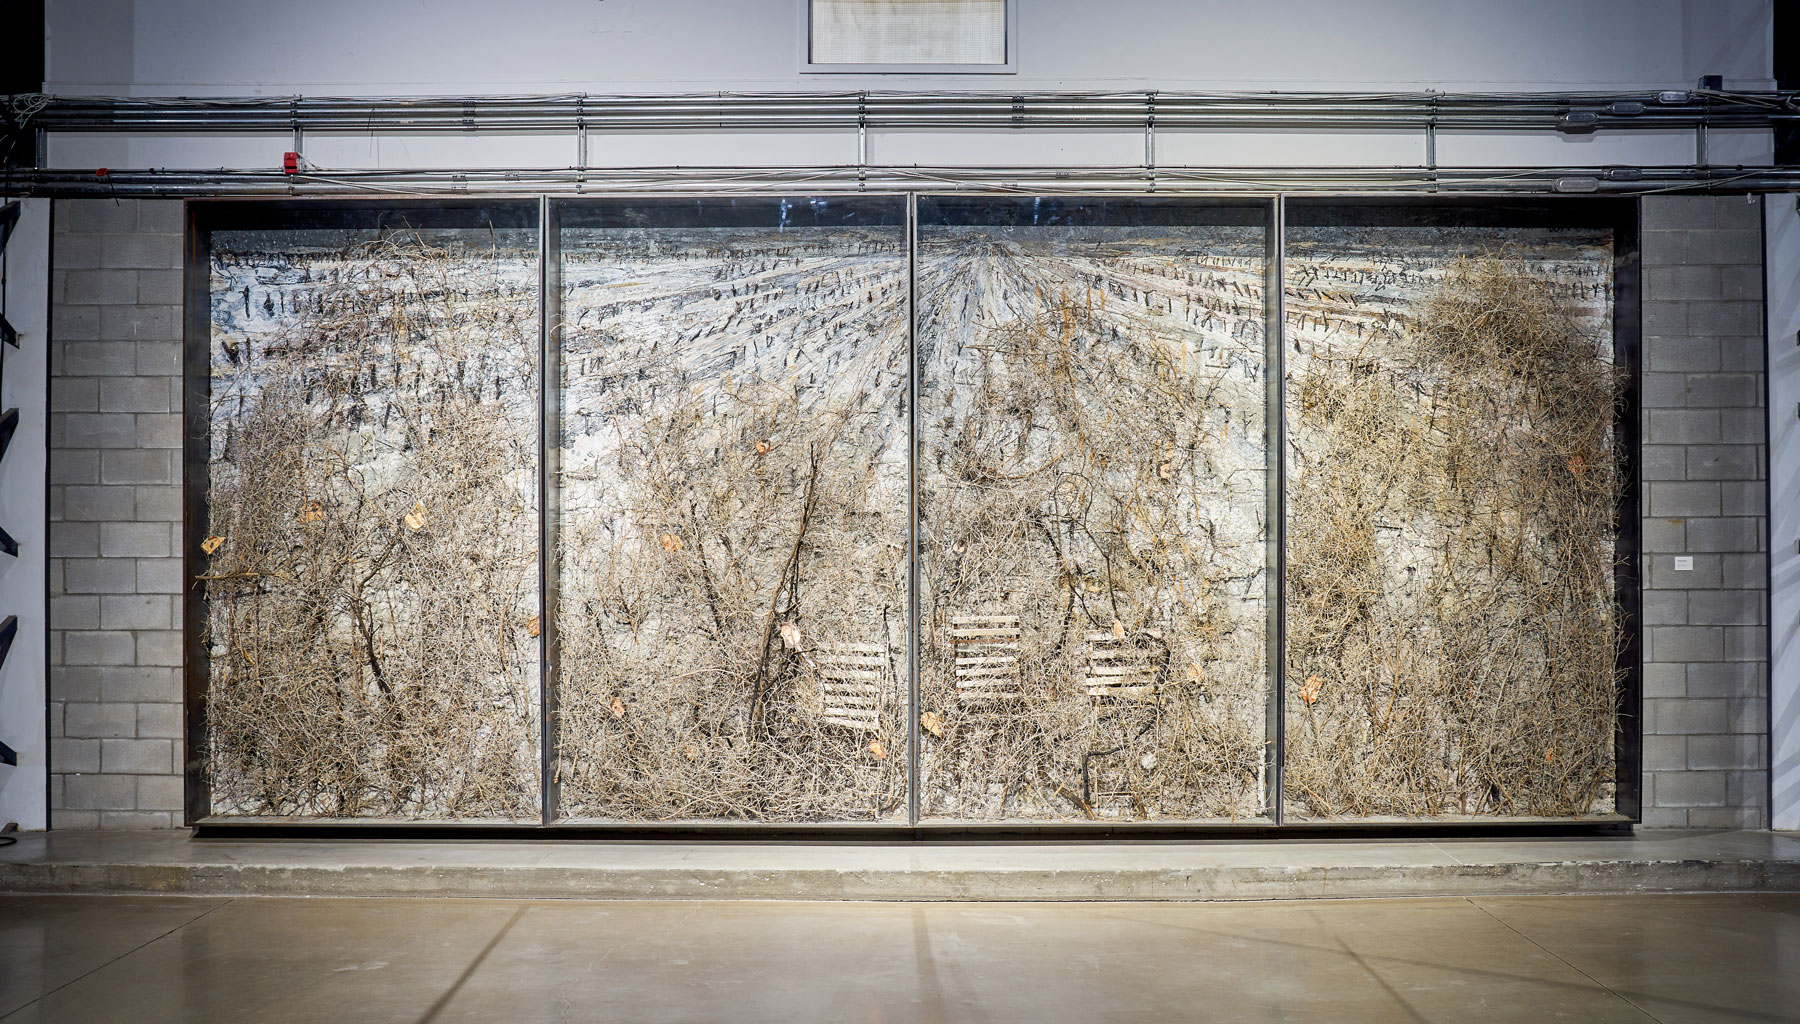 """Anselm Kiefer ,  Der Brennende Dornbusch , 2007, Mixed media on board, lead and glass, 130 5/8"""" x 302 ½"""" (332 x 768 cm). Photo credit: Romain Guilbault"""